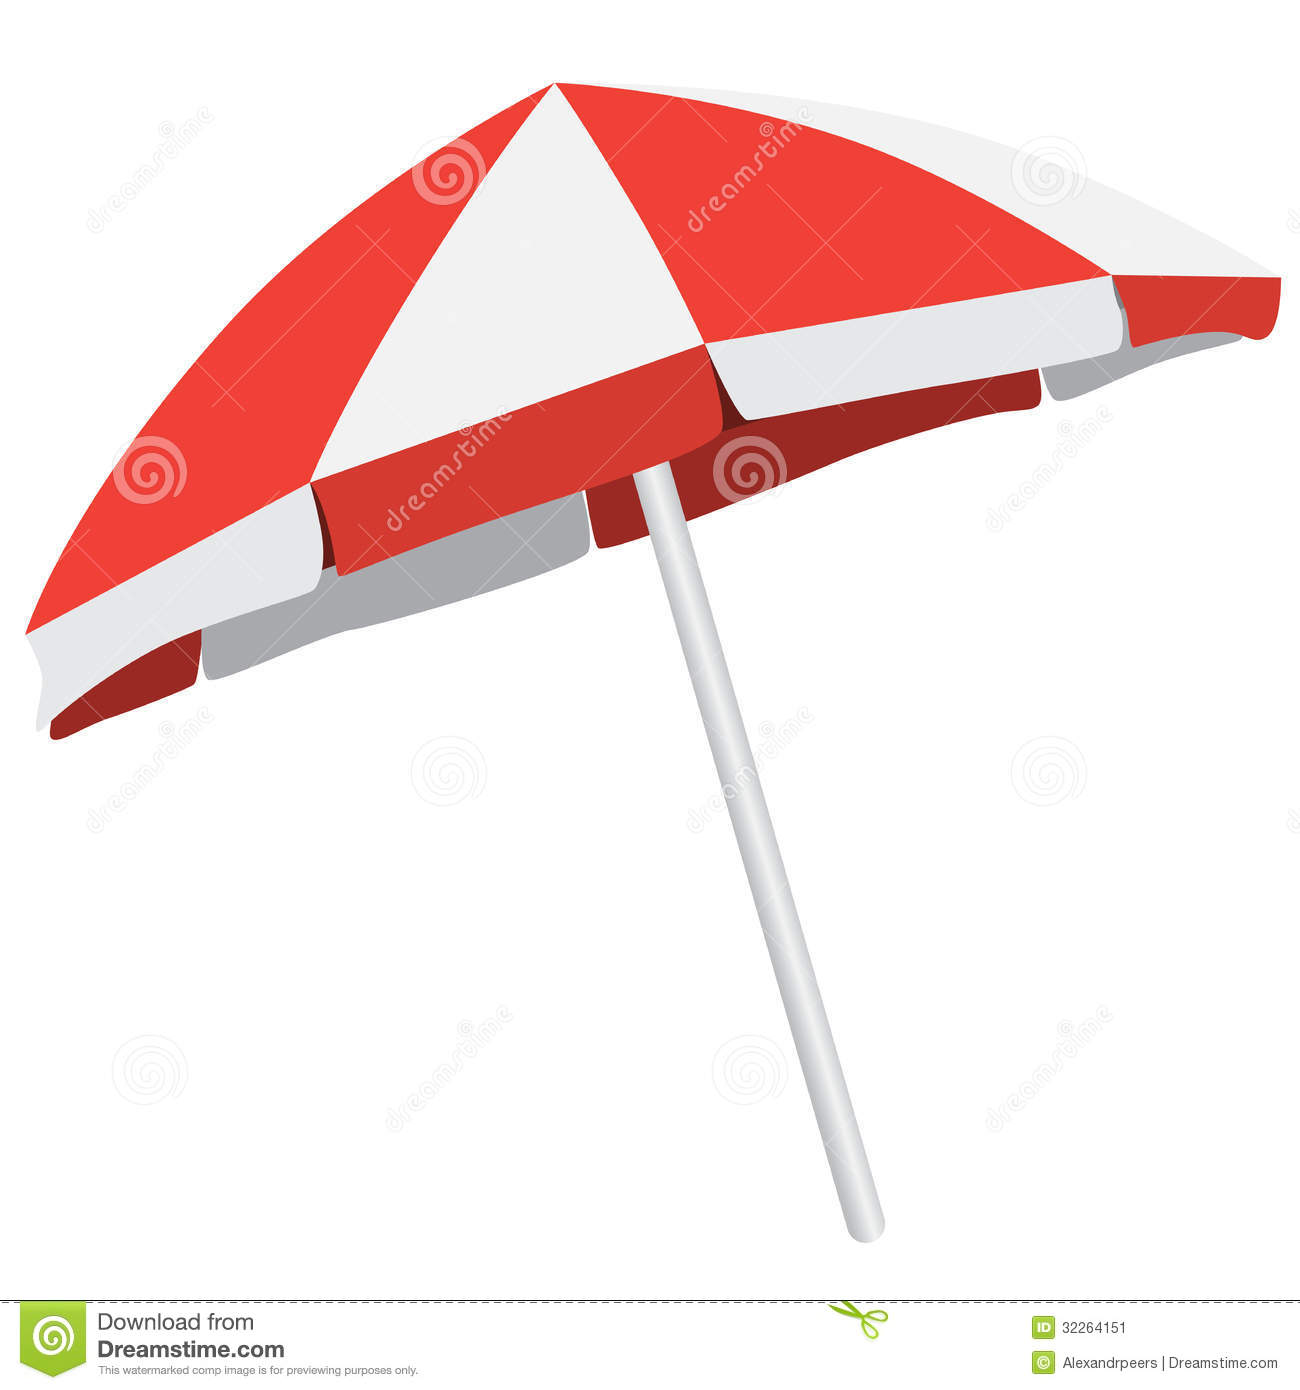 Illustration of of colorful beach umbrella. Vector isolated parasol.